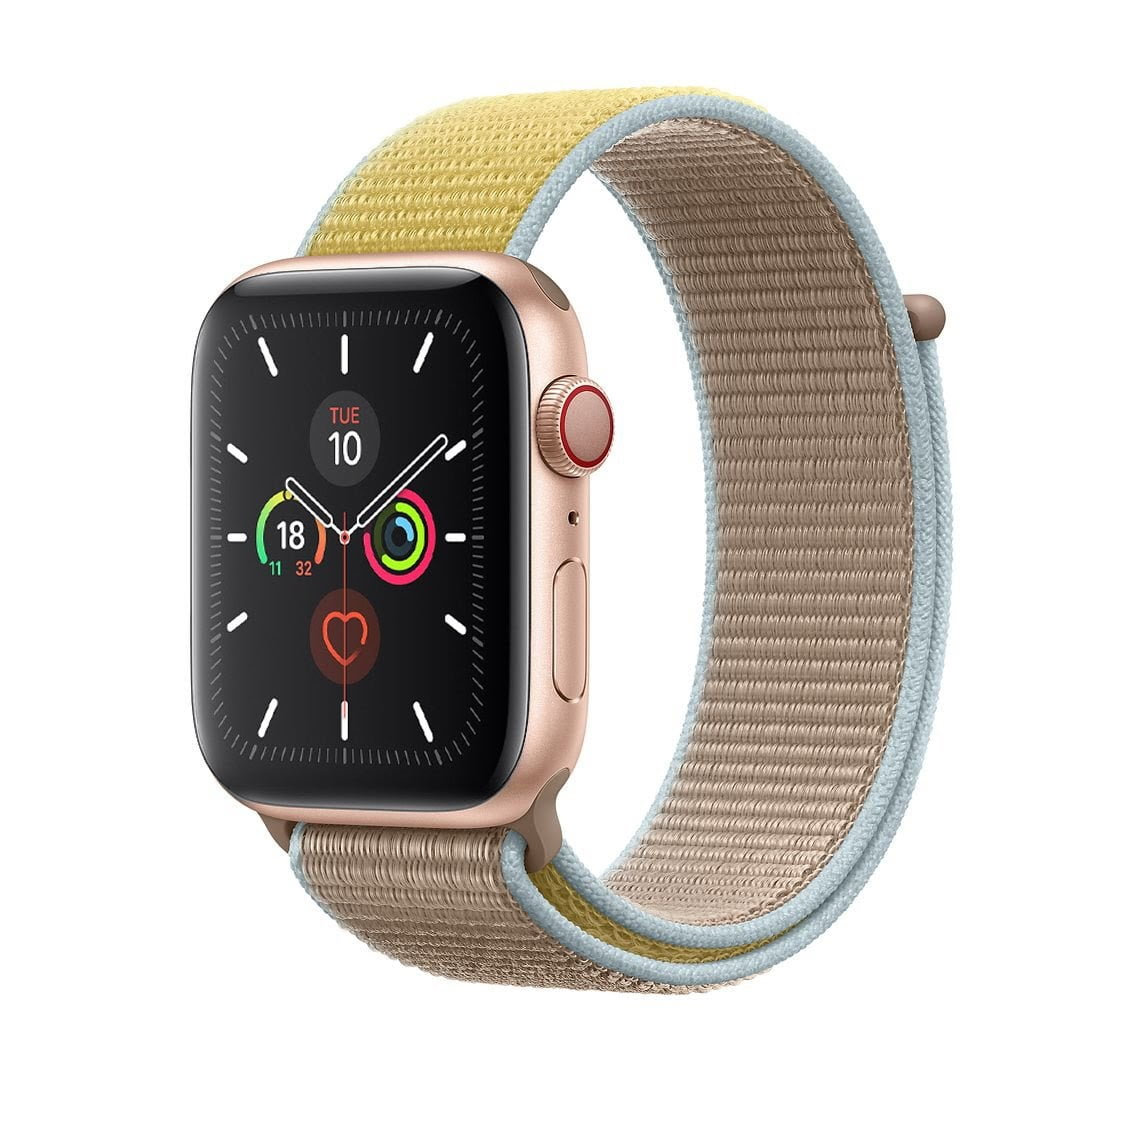 Pair your stunning Apple Watch with a comfy Nylon Band!